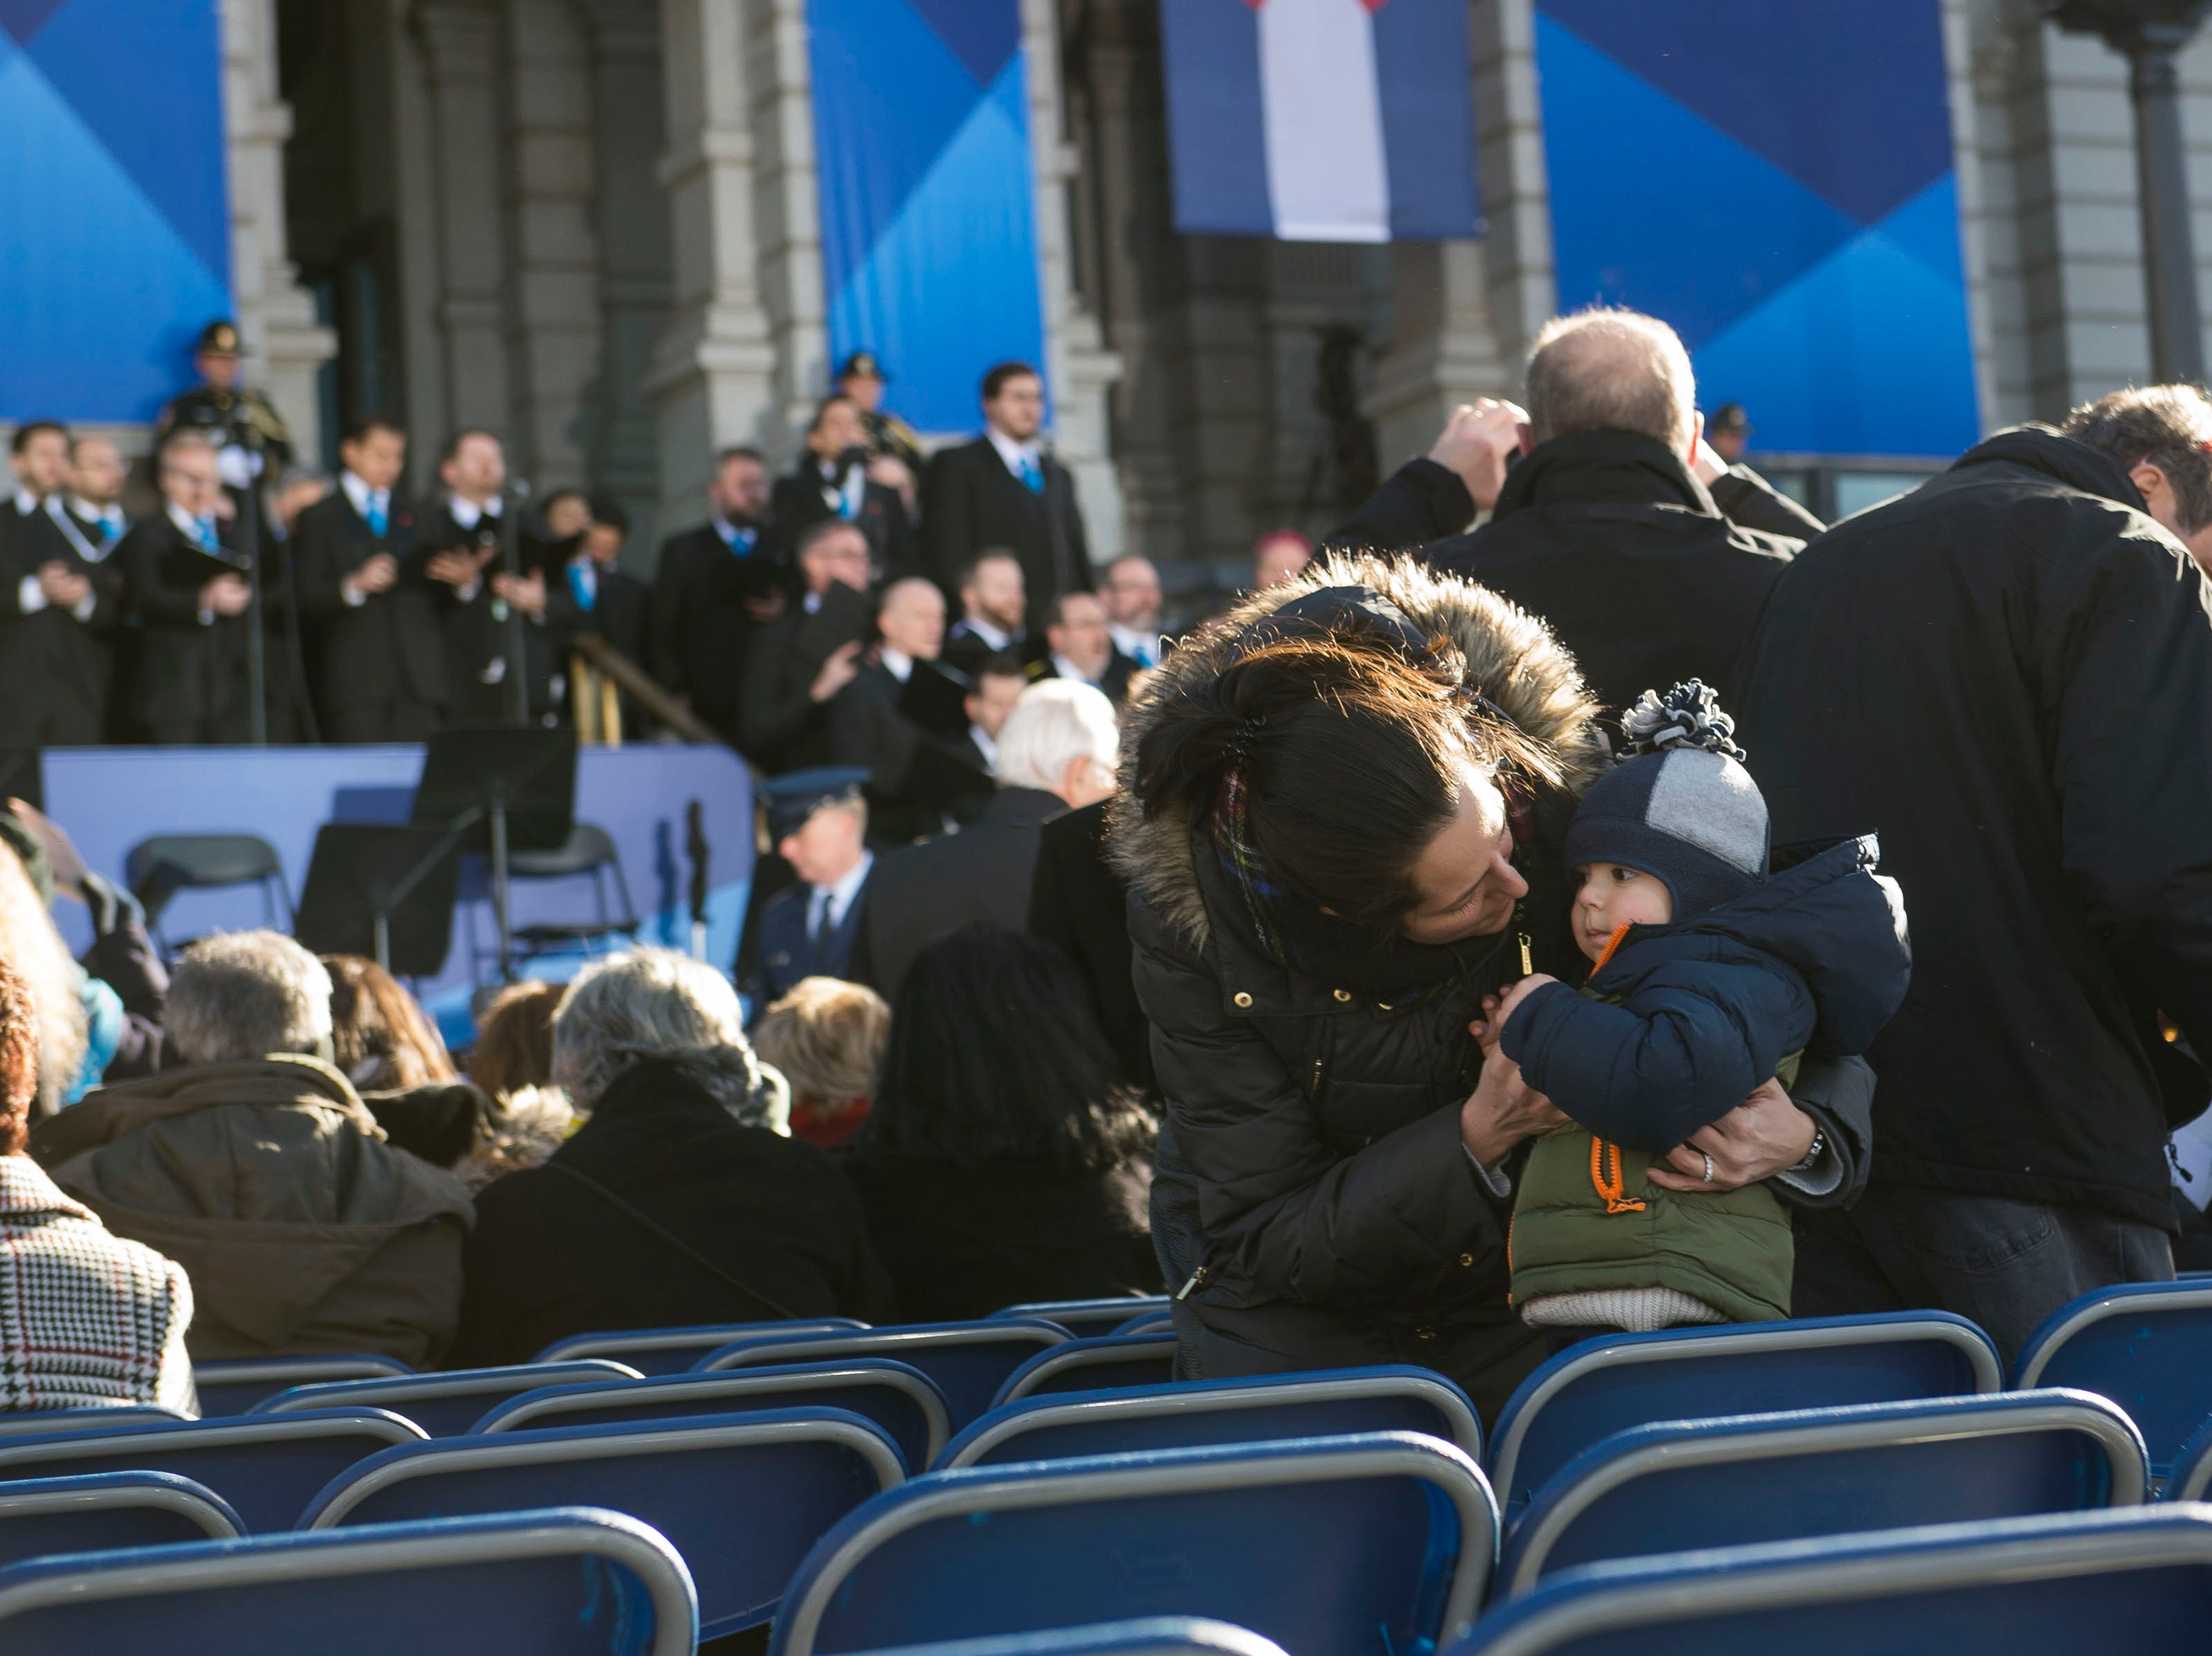 Michelle Weidler gives her one-year-old son Zachary a kiss while audience members find their seats before the inauguration of Colorado State Governor Jared Polis on Tuesday, Jan. 8, 2019, in front of the Colorado State Capital building in Denver, Colo.